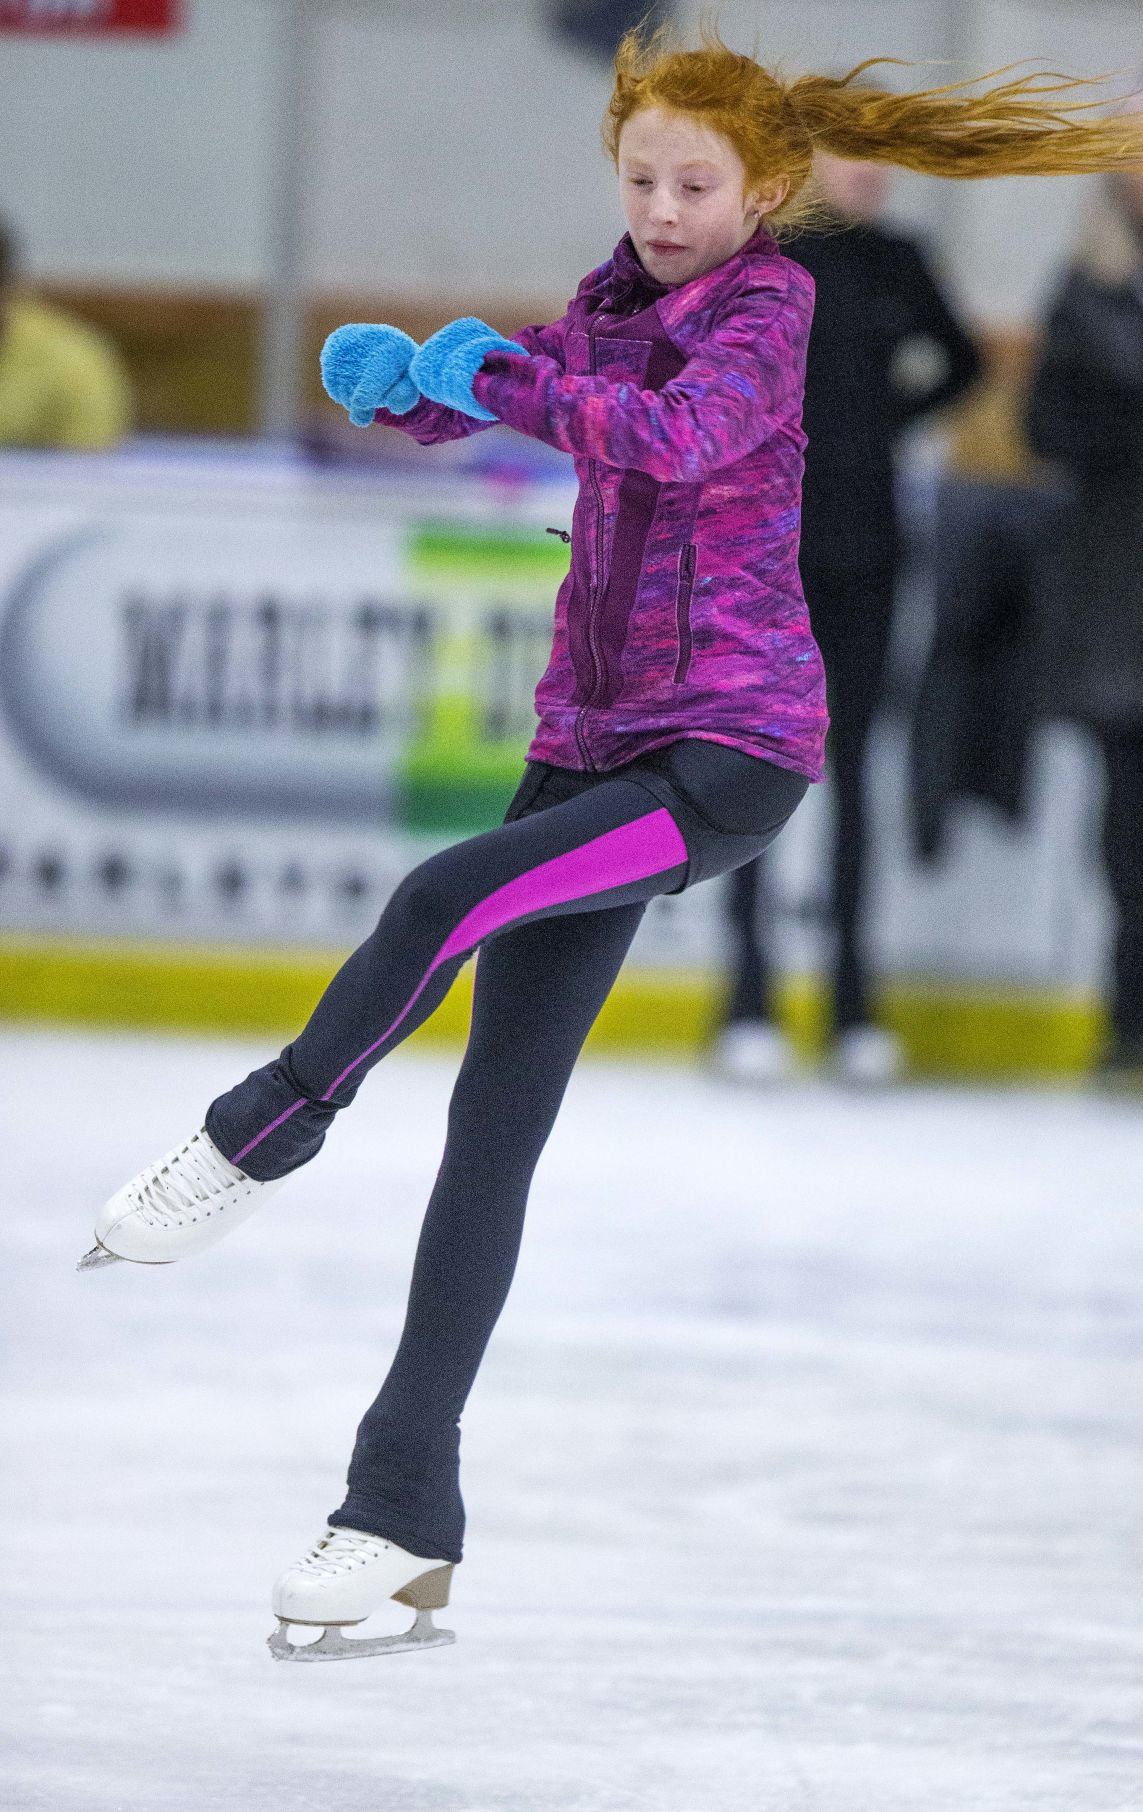 Local youth figure skaters practice at Ice House